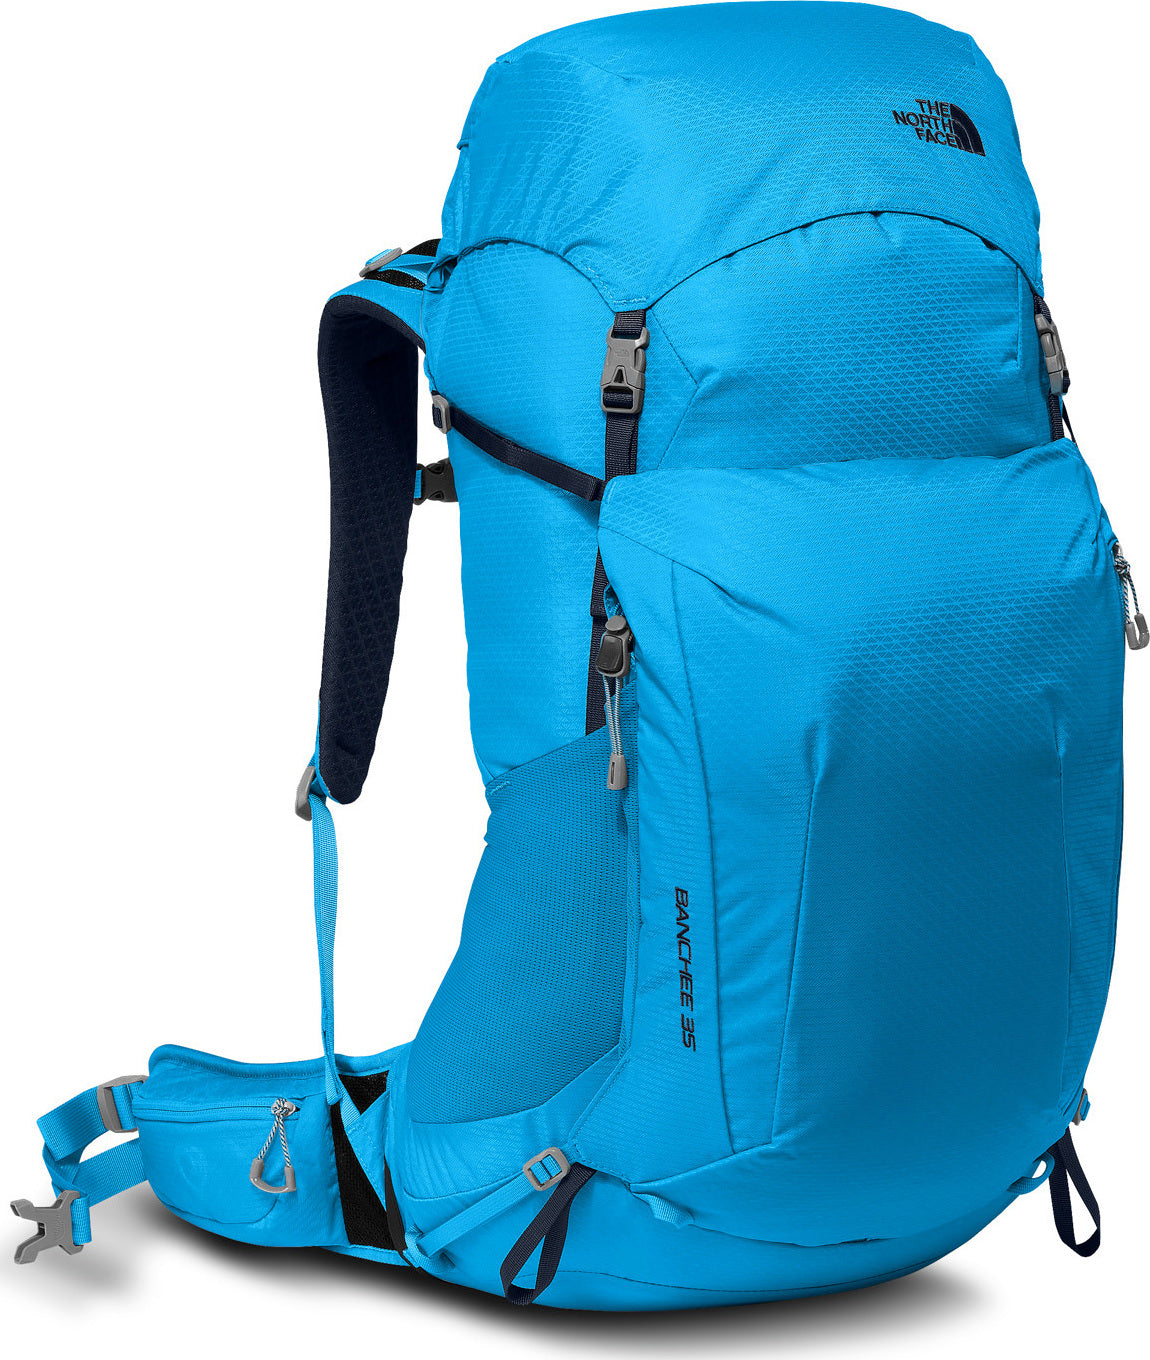 The North Face Banchee 35 L Backpack  a95b52d2a